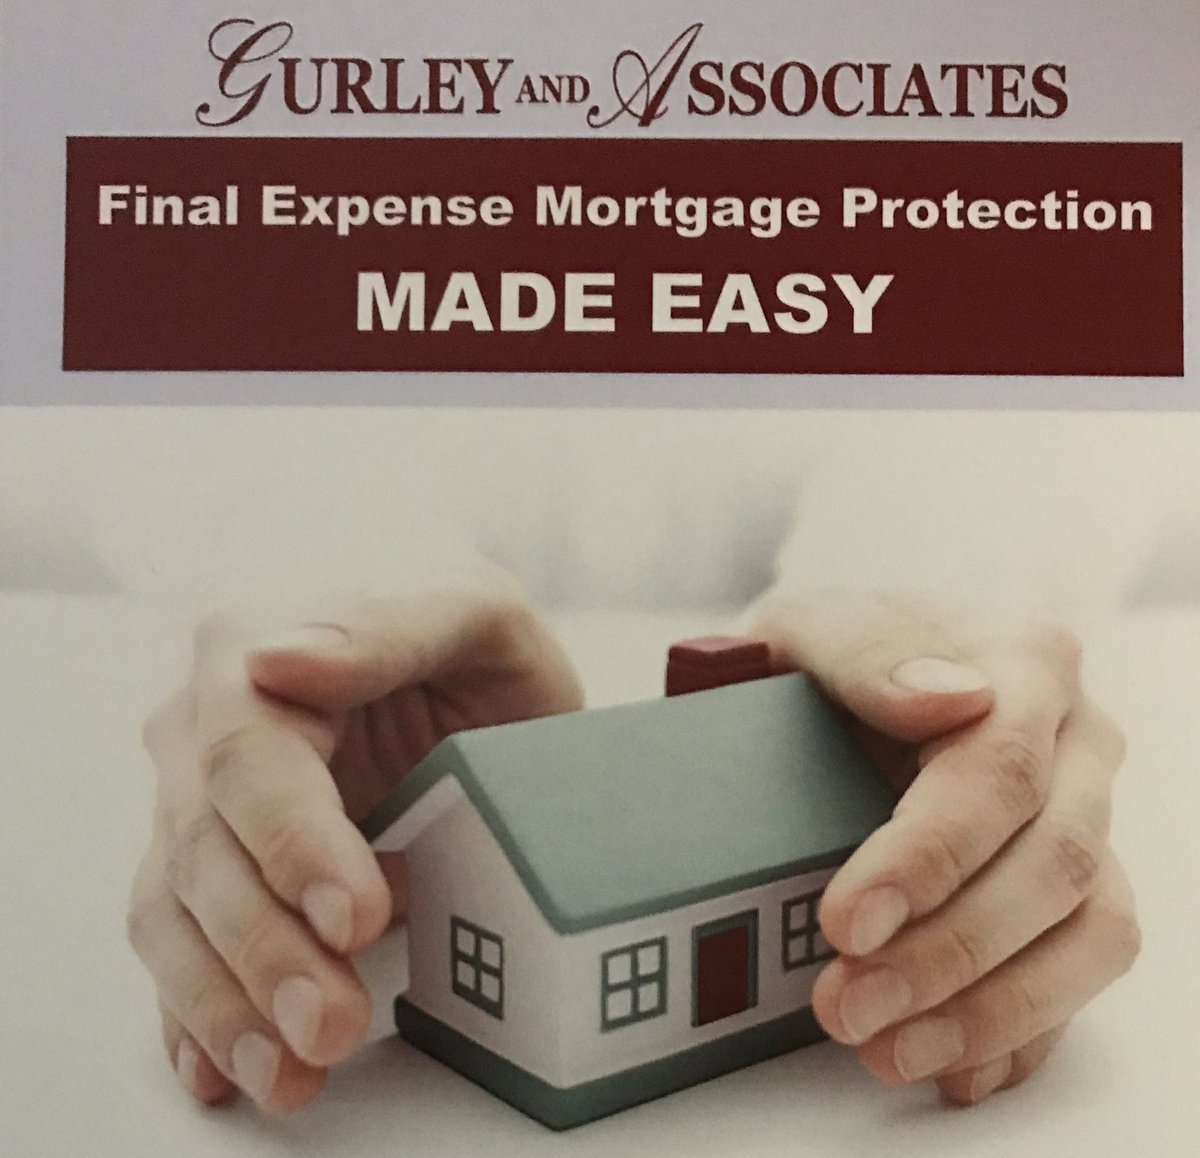 Buying a Home or Refinacing a Loan? I offer Mortgage Protection for your and your Family. Call to learn about your options! Kristine Gurley 228.493.2028 10381 Hwy 603, Ste. C, Bay St. Louis, MS pic.twitter.com/t2WnGUehpM